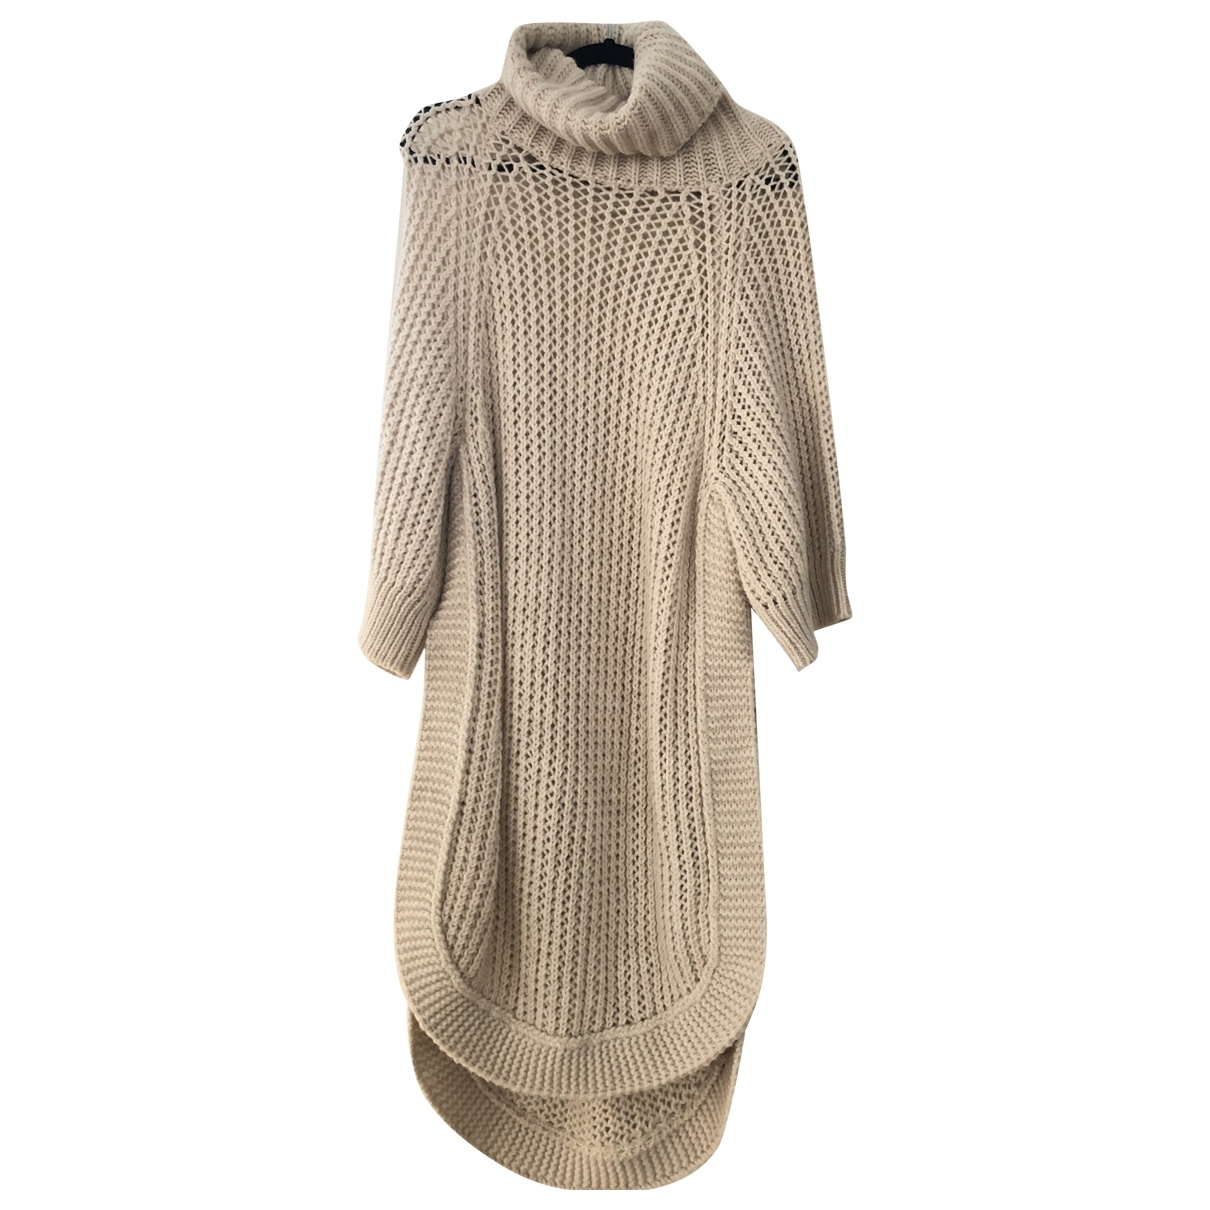 Chloé \N Beige Wool Knitwear for Women M International